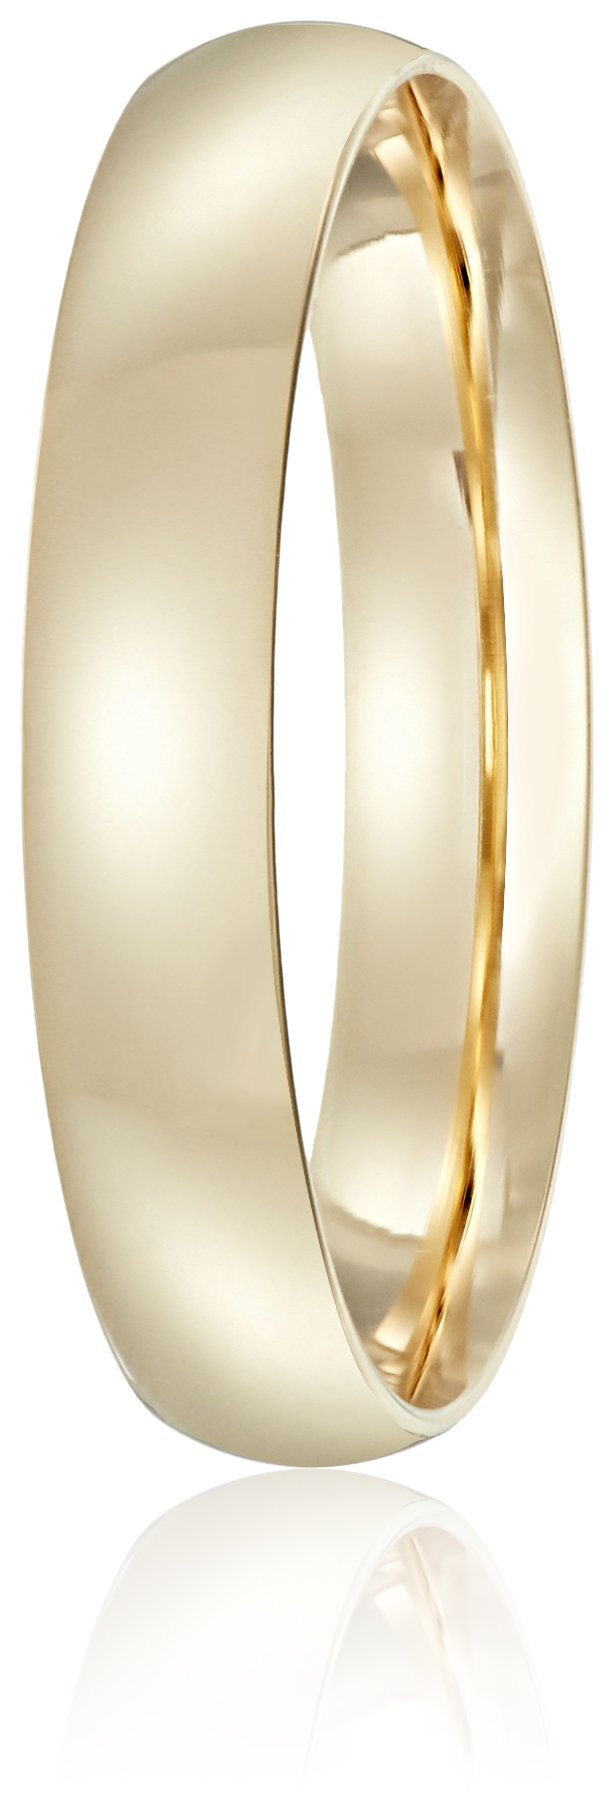 Light Comfort-Fit 14K Yellow Gold Band, 4mm, Size 9 by Amazon Collection (Image #2)